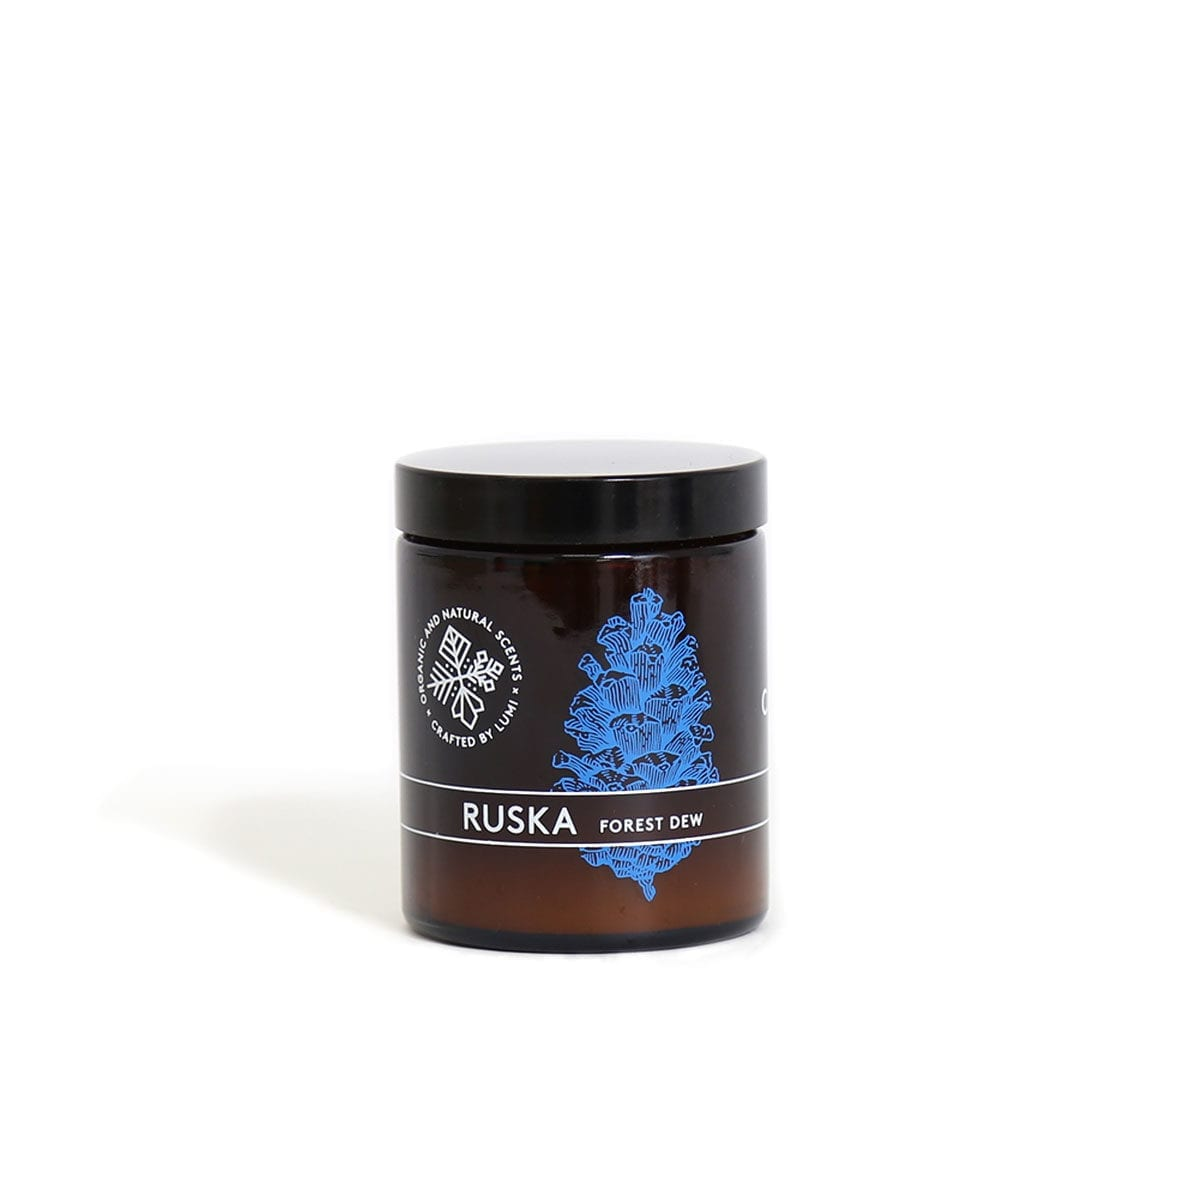 """Hand-poured LUMI vegetable wax candle in Ruska """"Forest Dew"""" natural botanical scent, reminding you of the foraging forest adventures."""